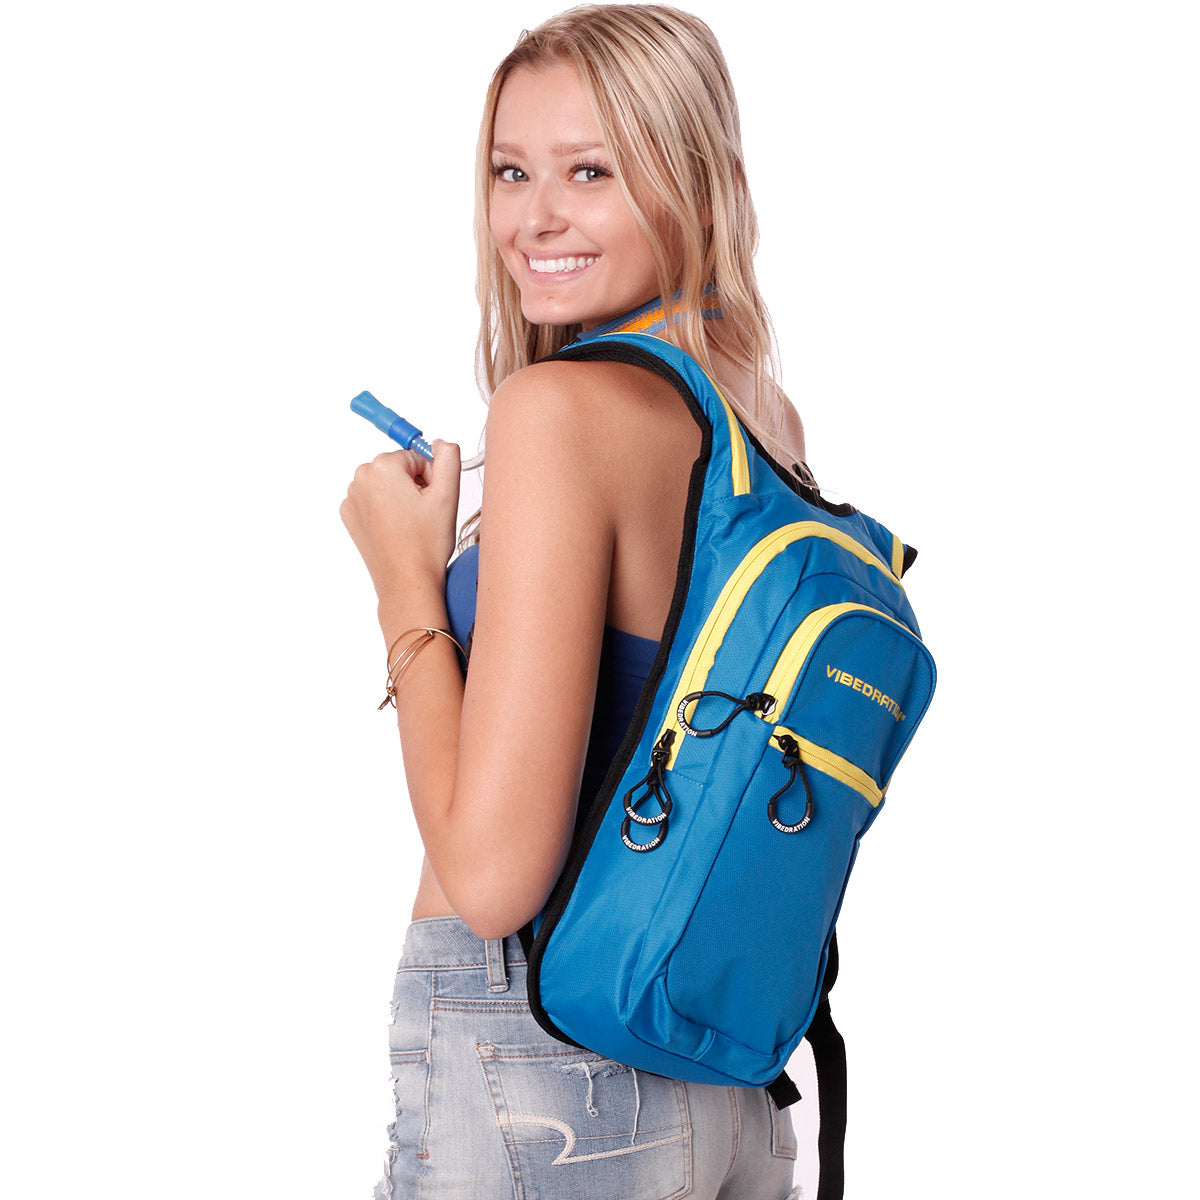 Female wearing baby blue and yellow hydration pack with three pockets.